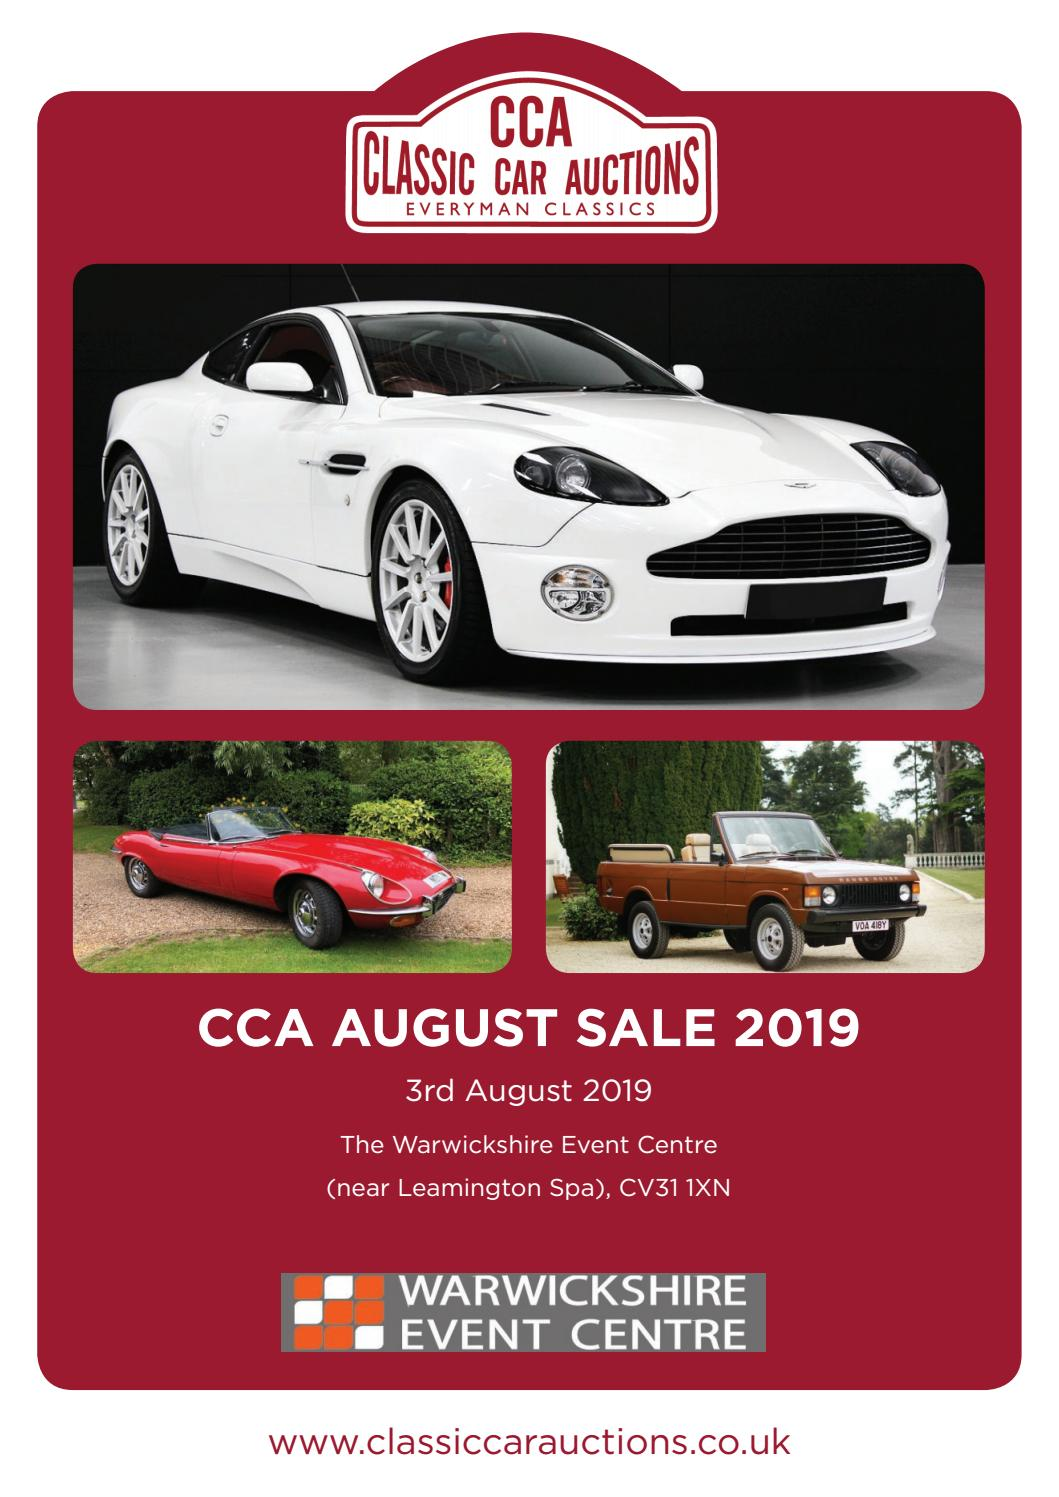 Voa Auto Auction >> Cca 3rd August Sale 2019 Classic Car Auctions By